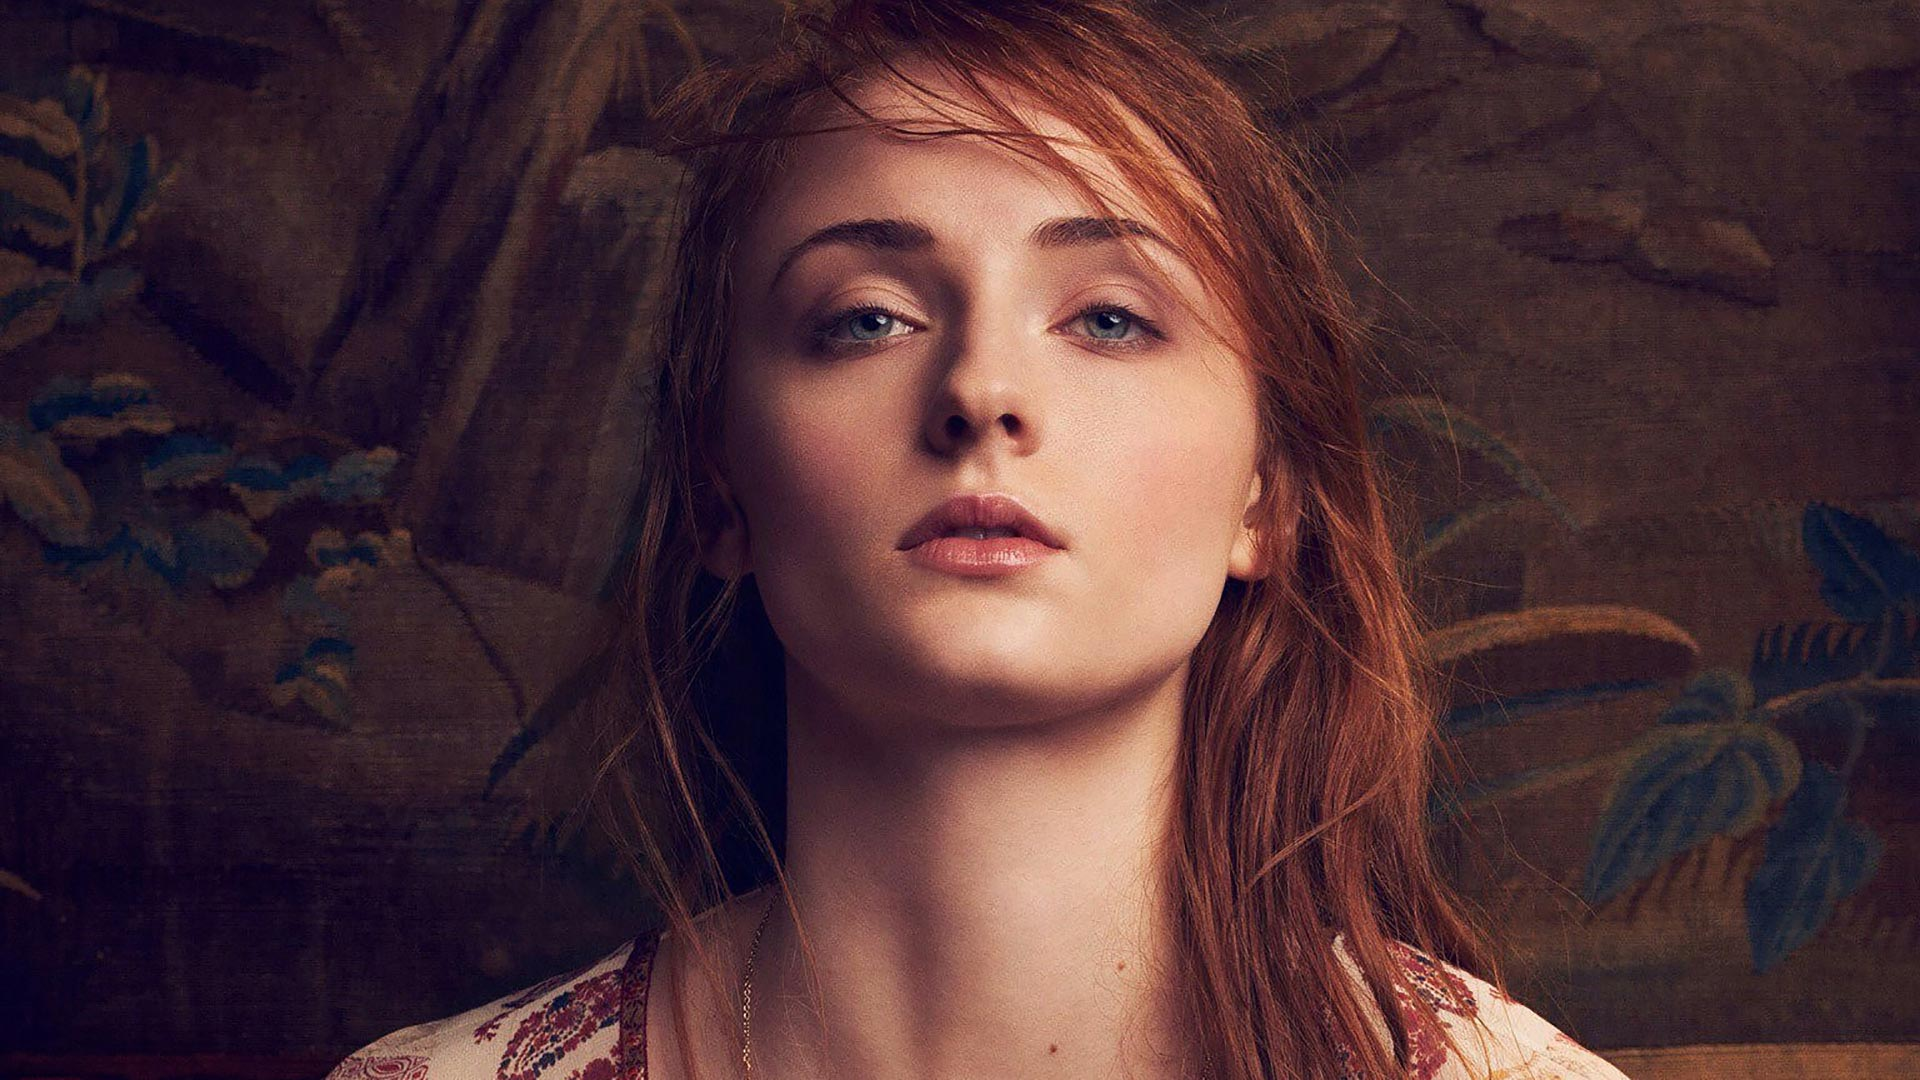 Sophie Turner Theme for Windows 10 | 8 | 7